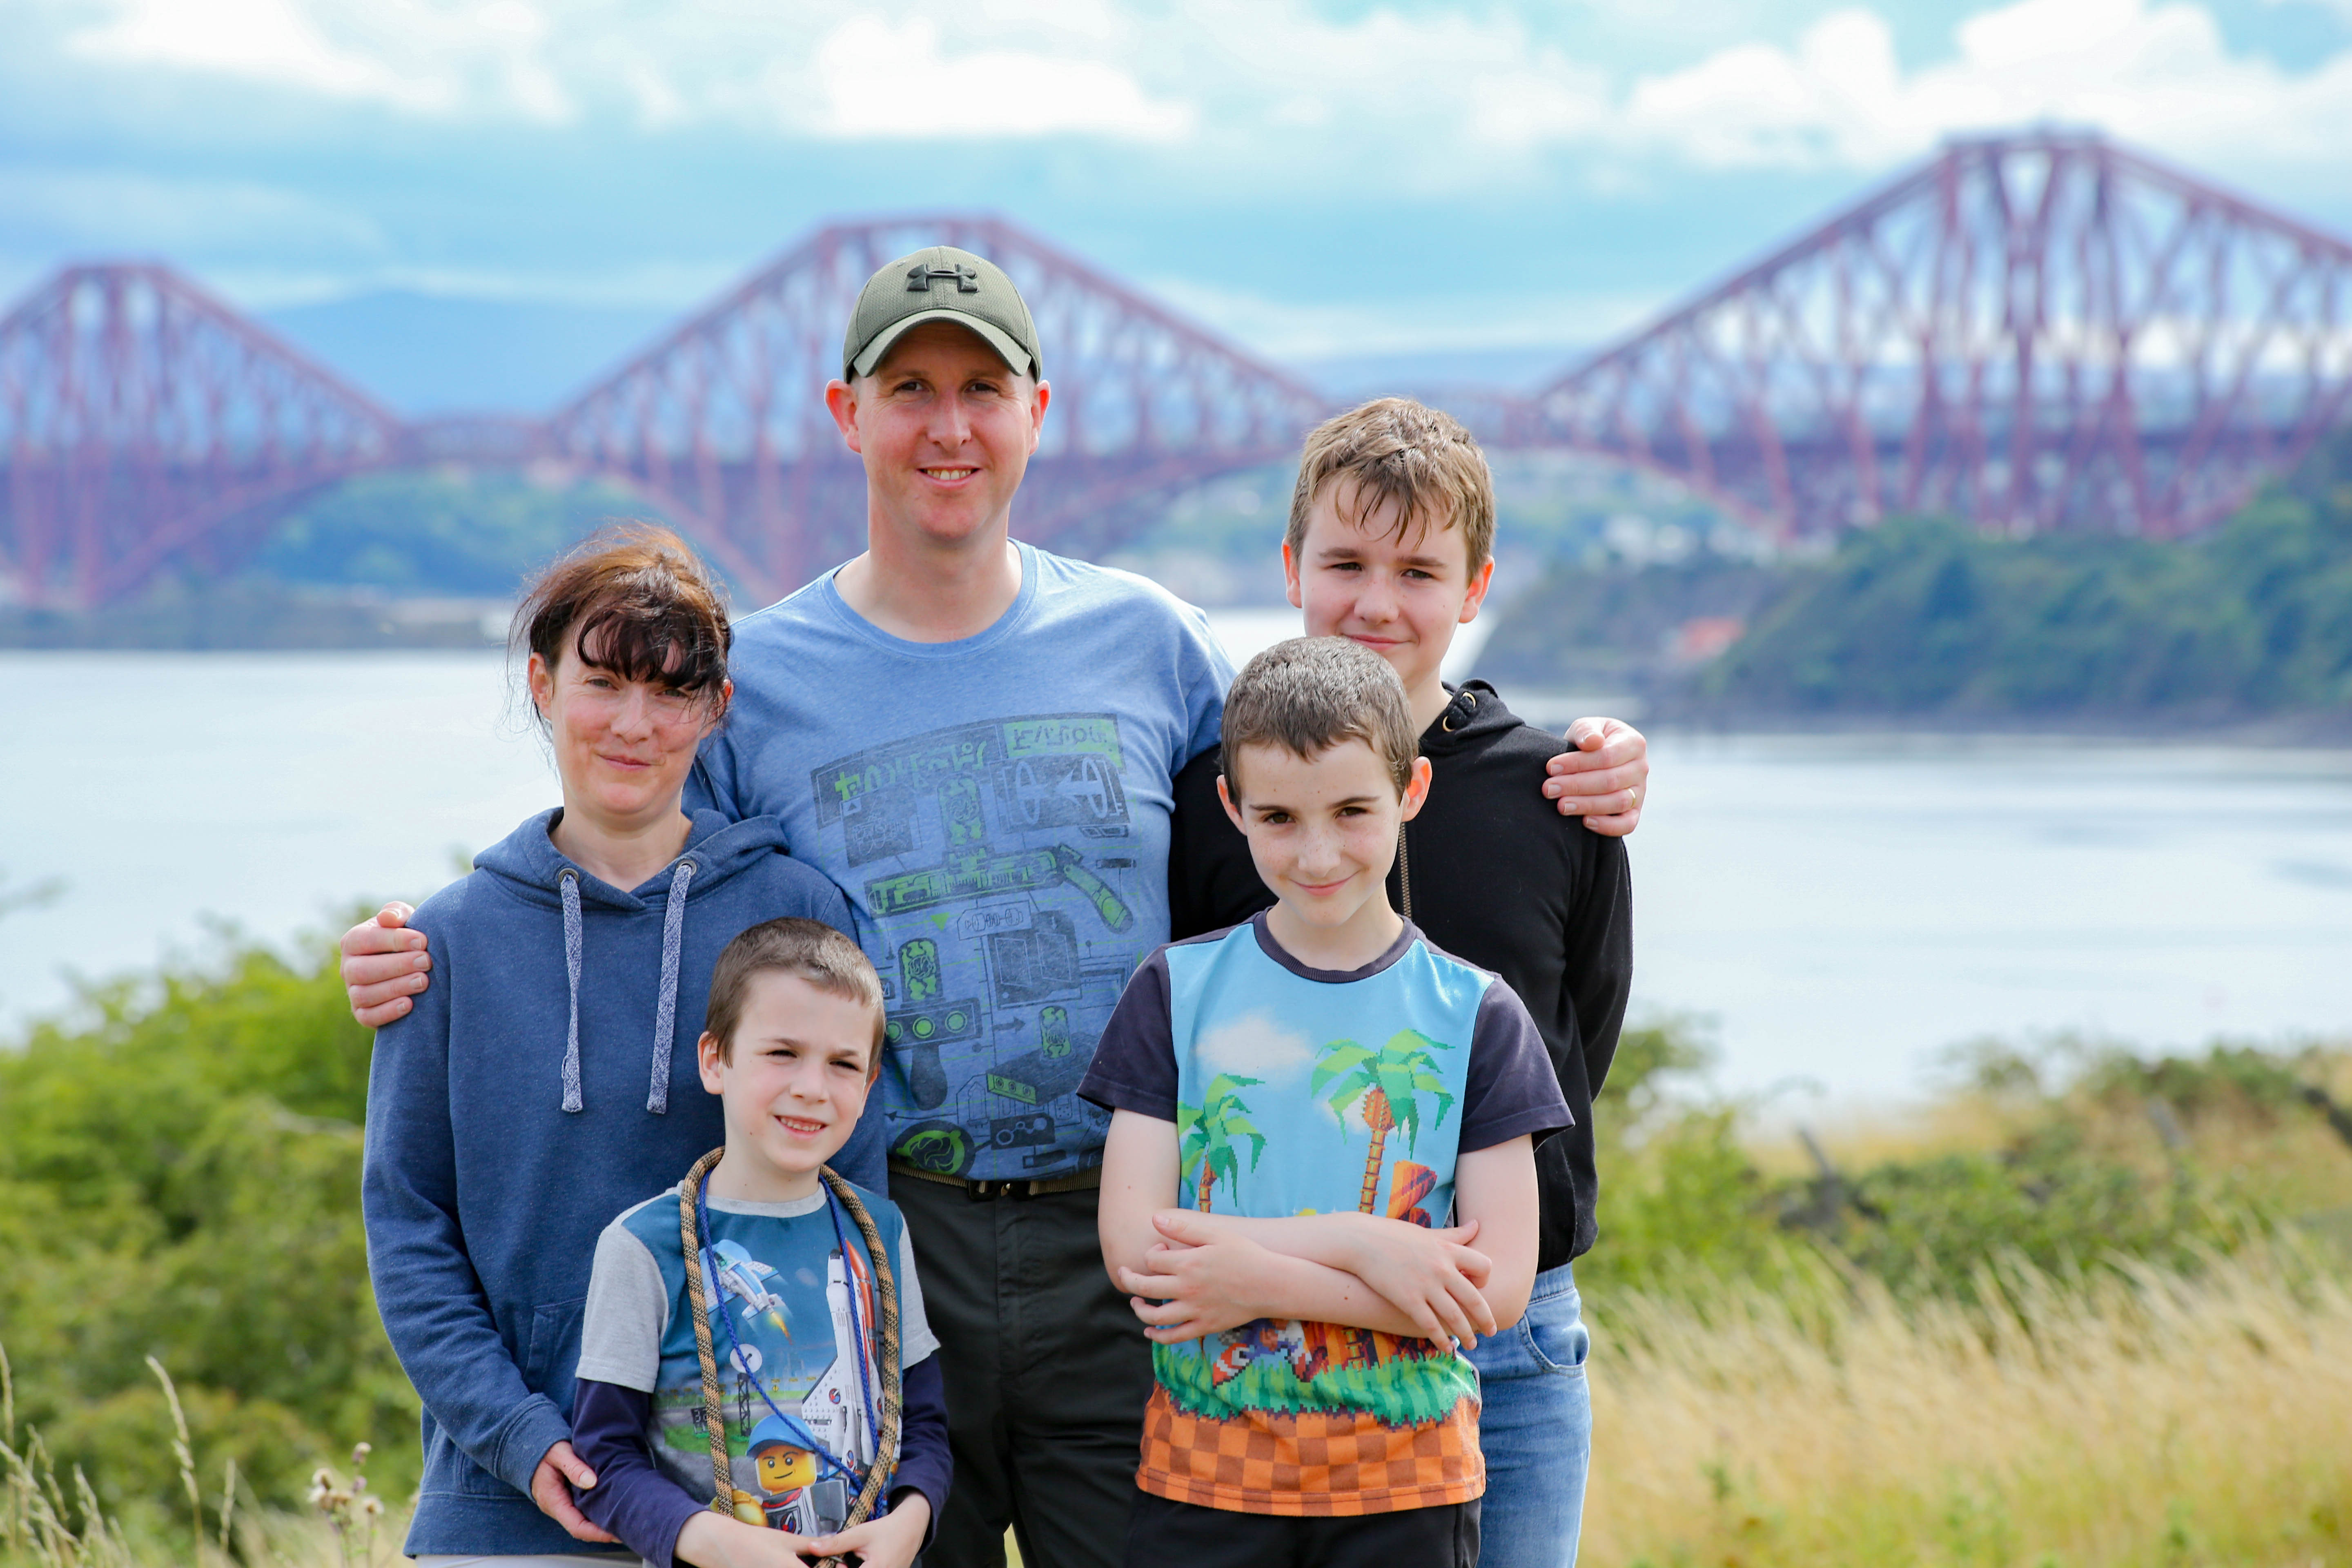 Andrew, who has OCD, with his family